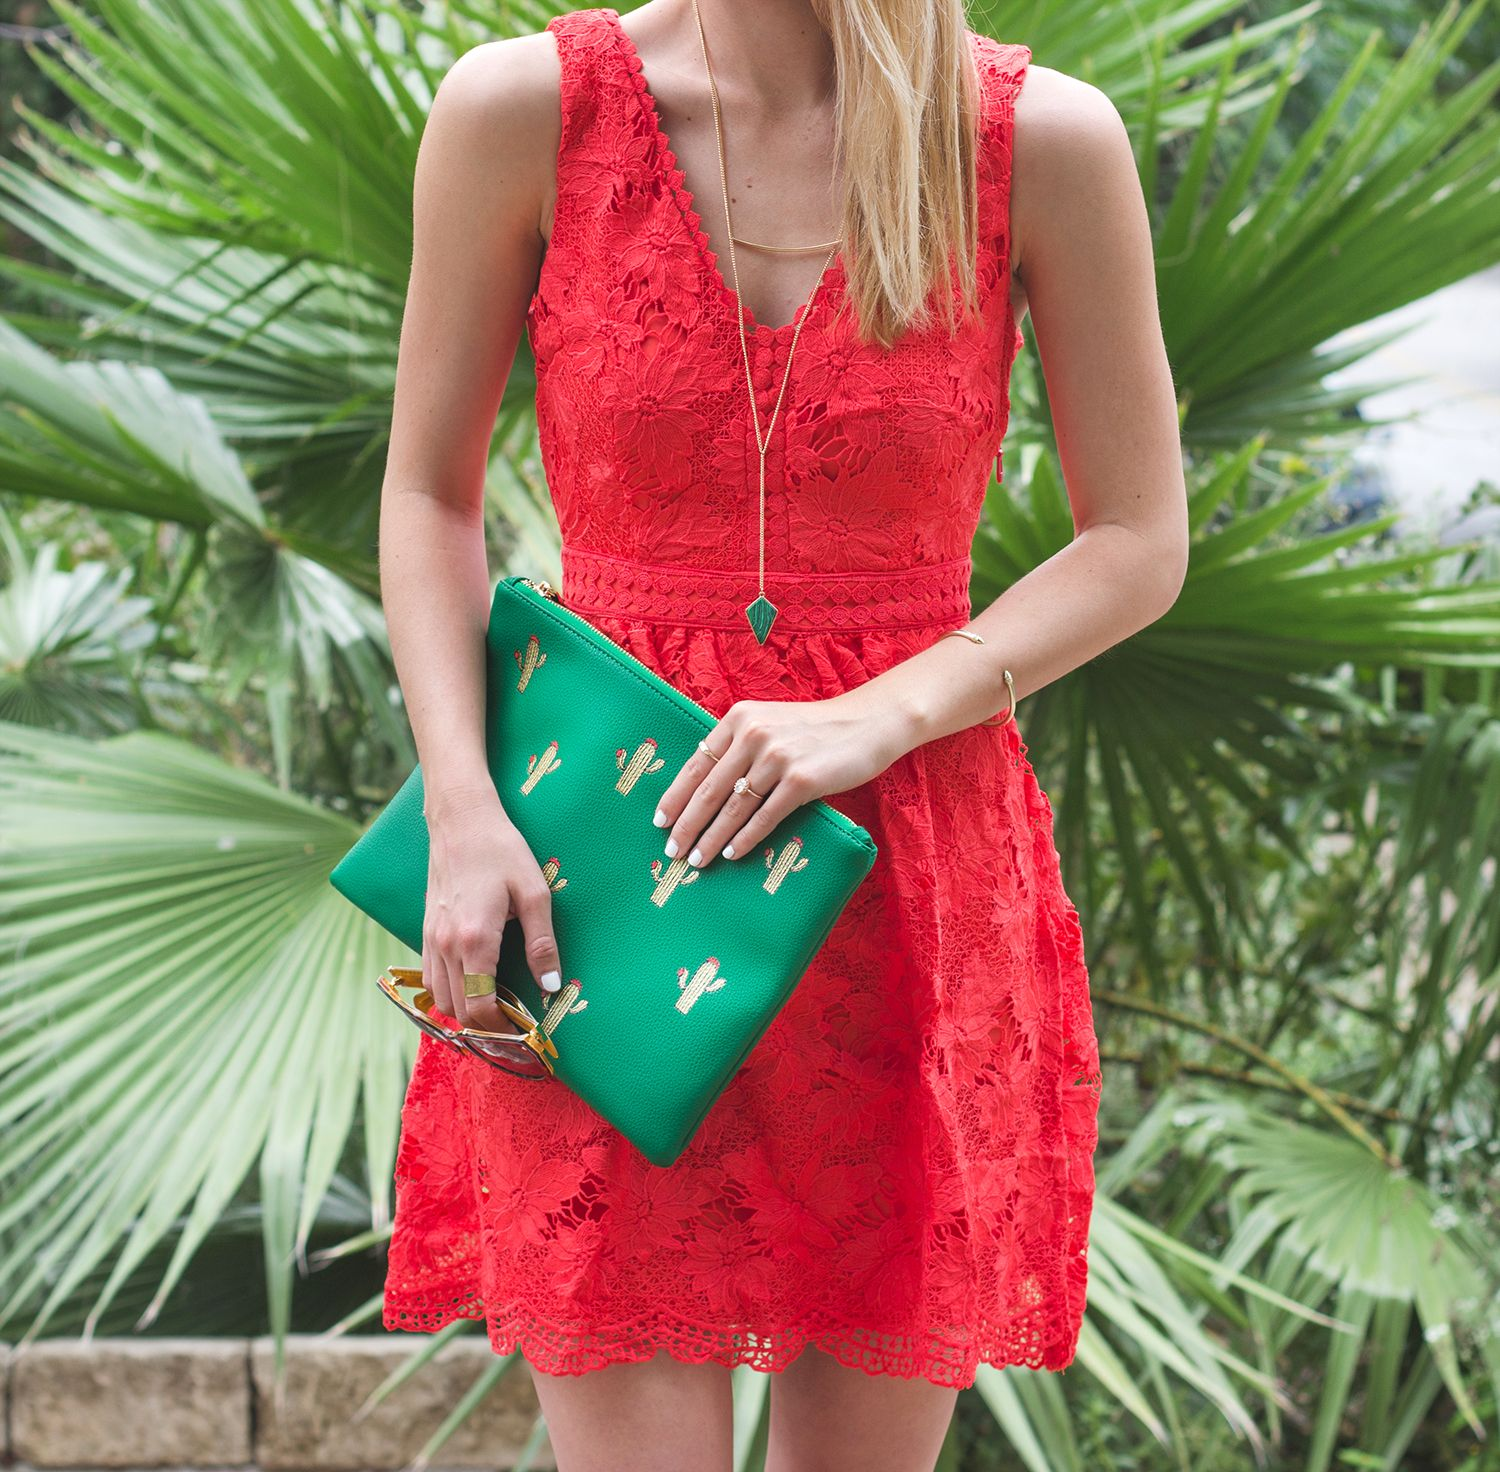 Cactus red cocktail dress